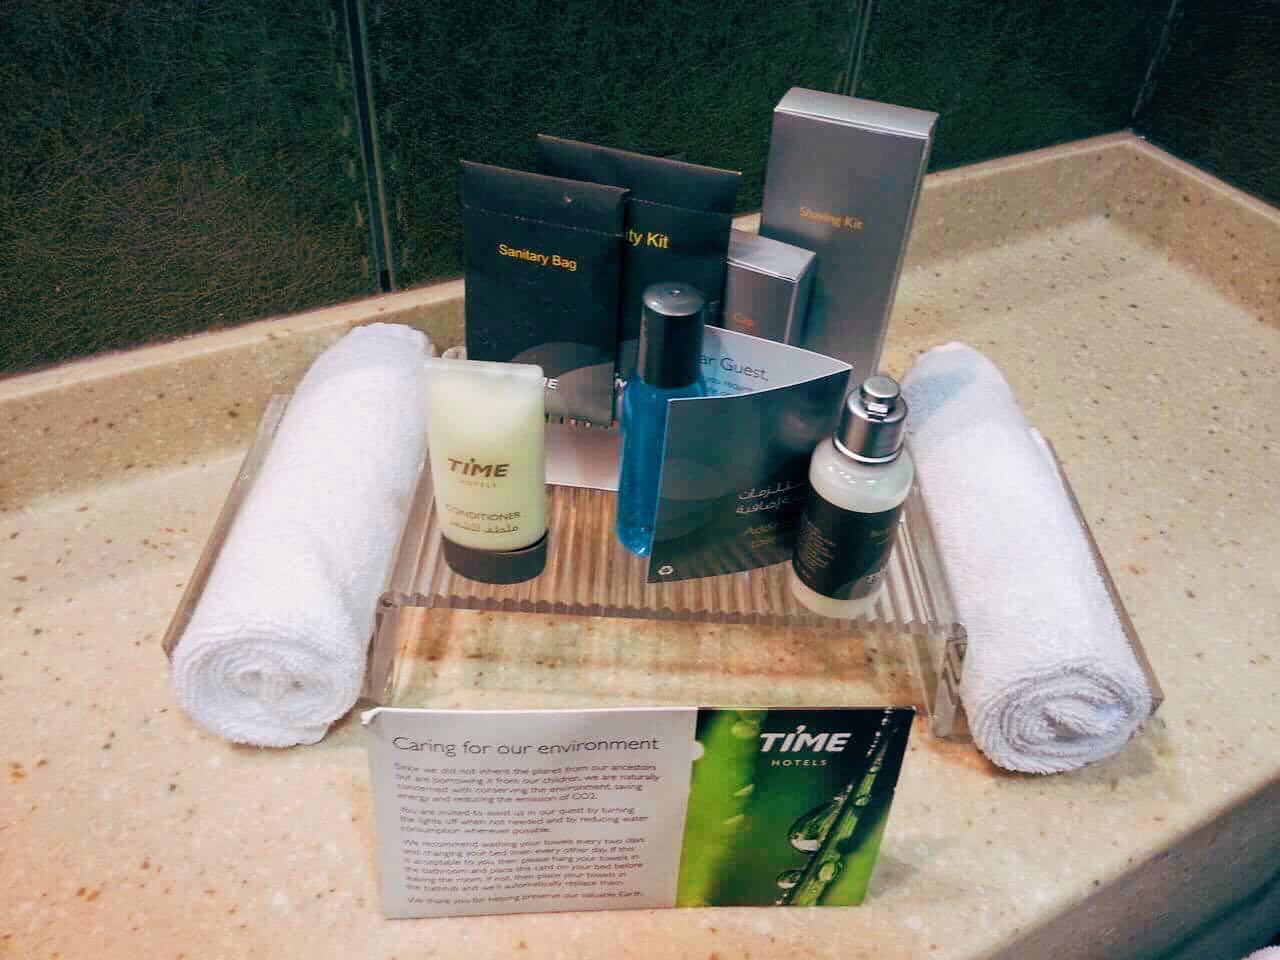 Complimentary toiletries at Time Oak Hotel.